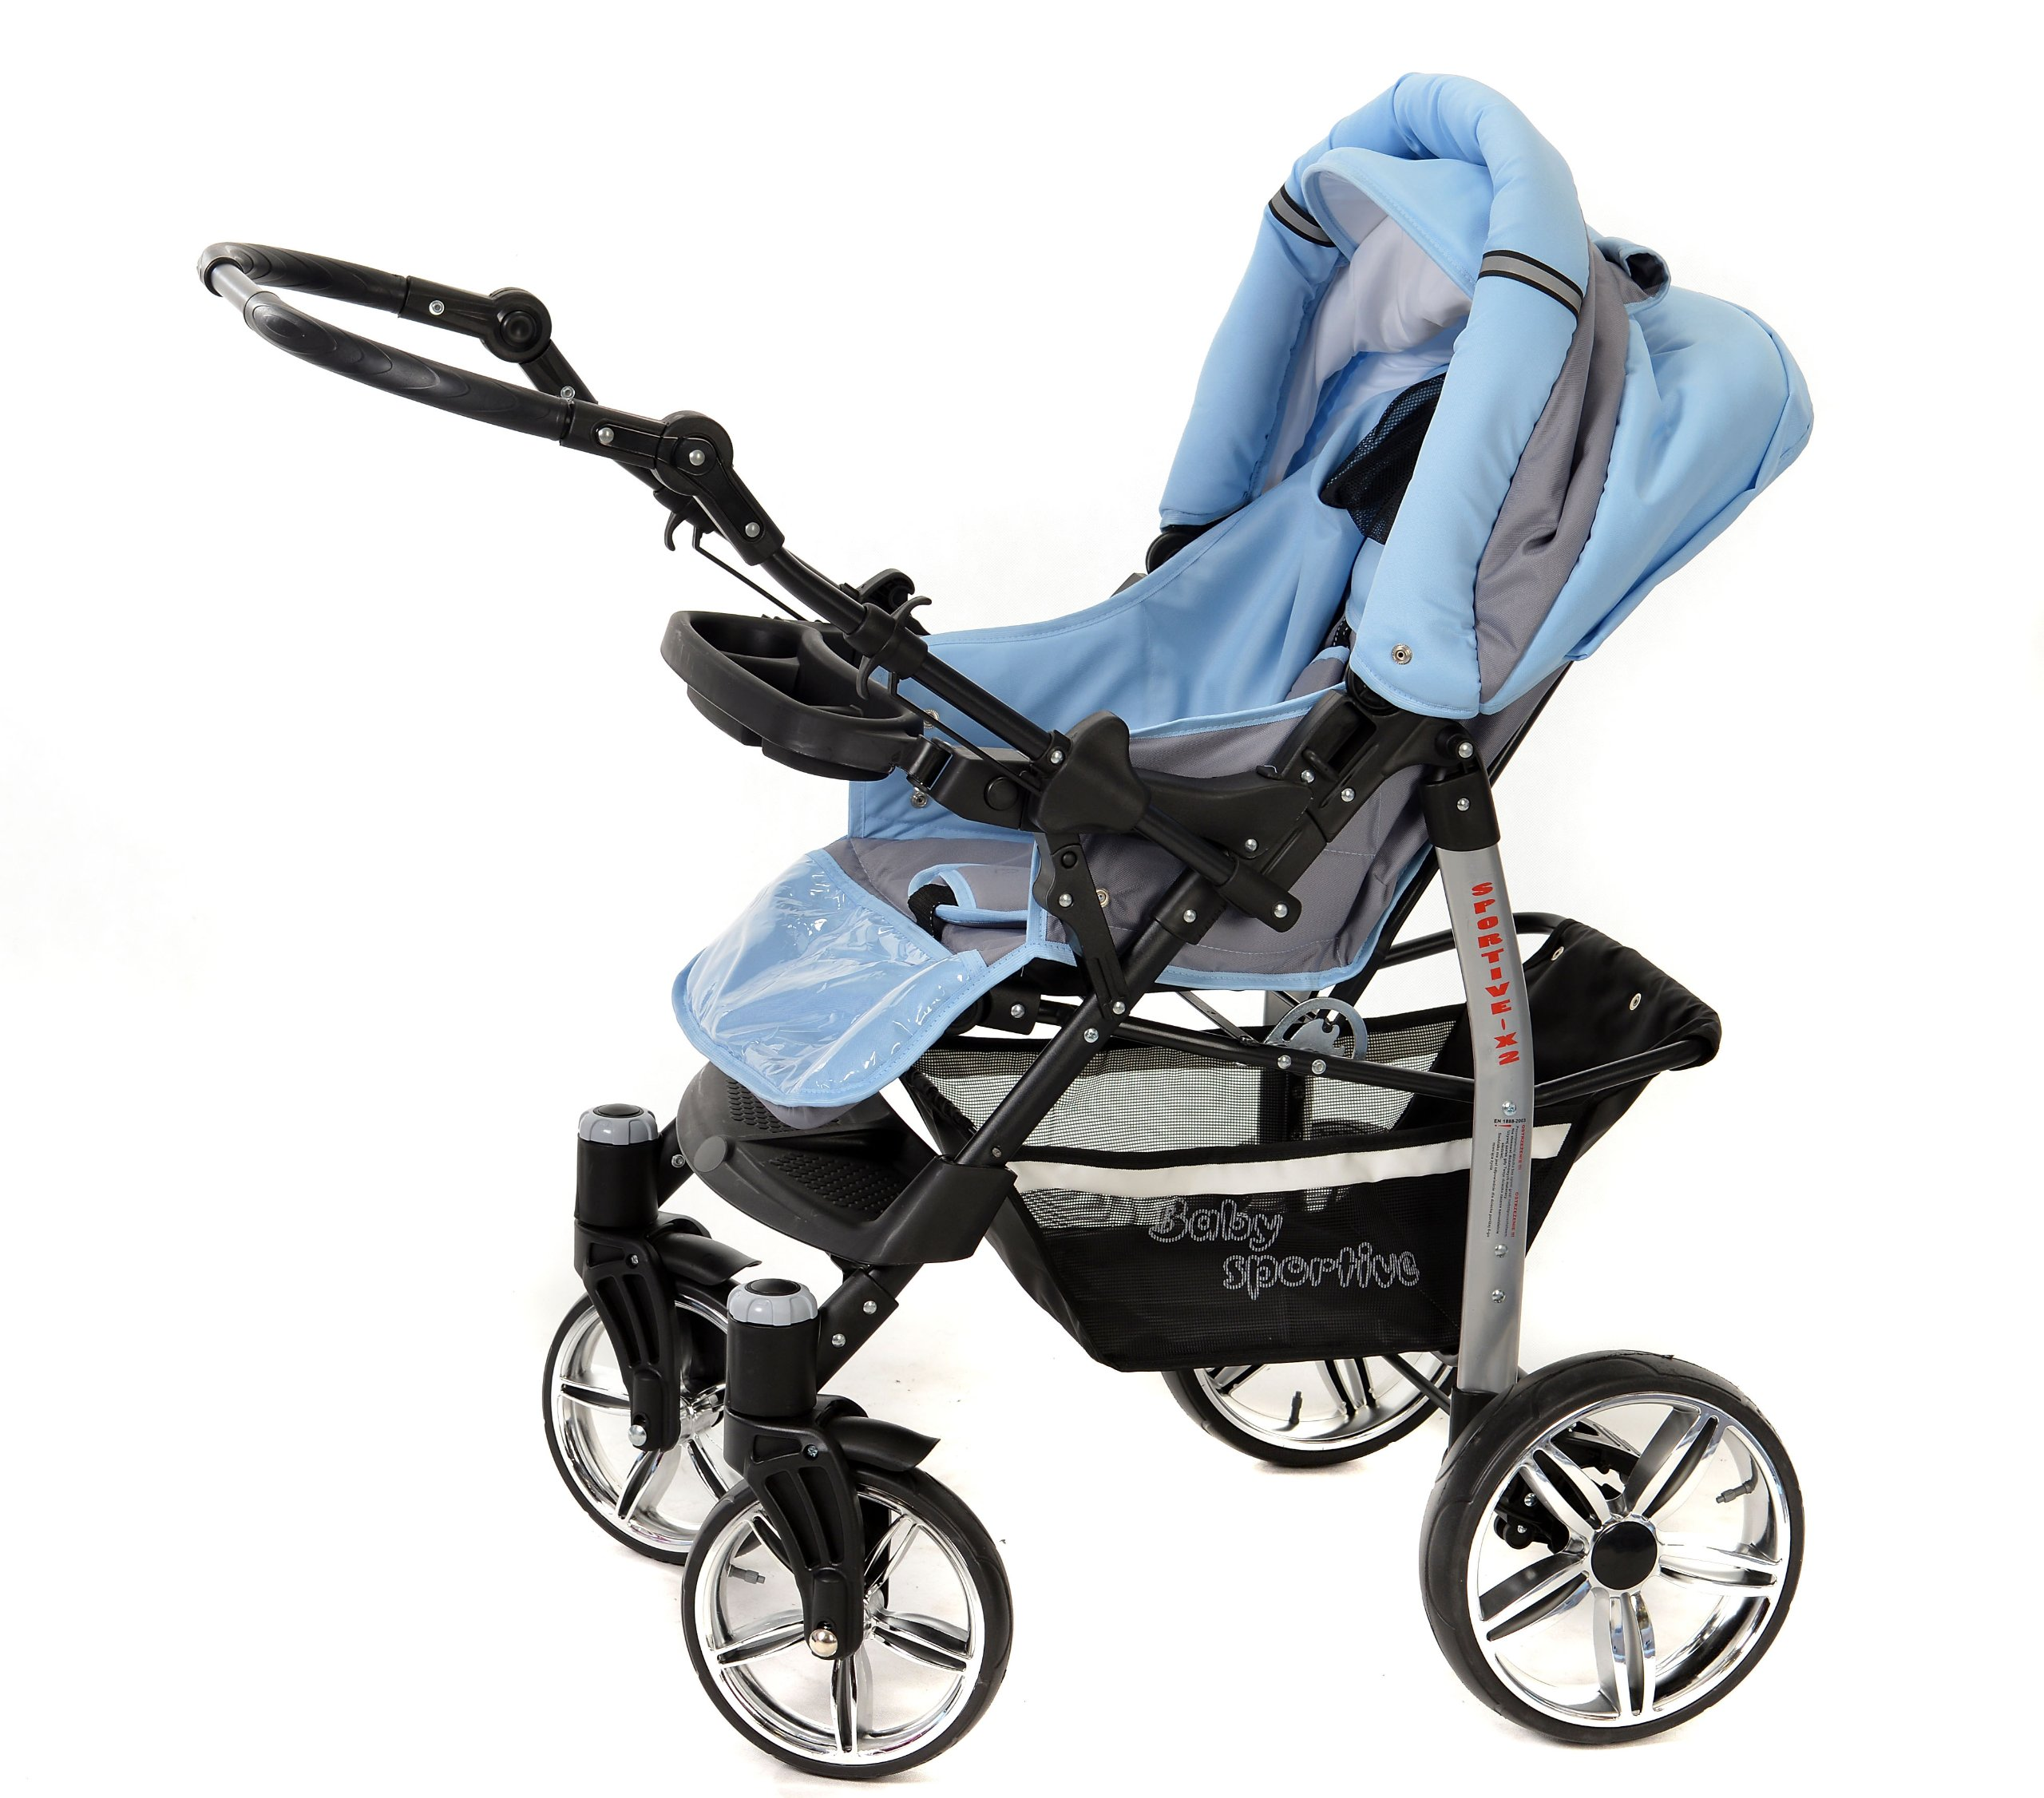 Sportive X2, 3-in-1 Travel System incl. Baby Pram with Swivel Wheels, Car Seat, Pushchair & Accessories (3-in-1 Travel System, Pale Grey & Blue)  3 in 1 Travel System All in One Set - Pram, Car Carrier Seat and Sport Buggy + Accessories: carrier bag, rain protection, mosquito net, changing mat, removable bottle holder and removable tray for your child's bits and pieces Suitable from birth, Easy Quick Folding System; Large storage basket; Turnable handle bar that allows to face or rear the drive direction; Quick release rear wheels for easy cleaning after muddy walks Front lockable 360o swivel wheels for manoeuvrability , Small sized when folded, fits into many small car trunks, Carry-cot with a removable hood, Reflective elements for better visibility 4